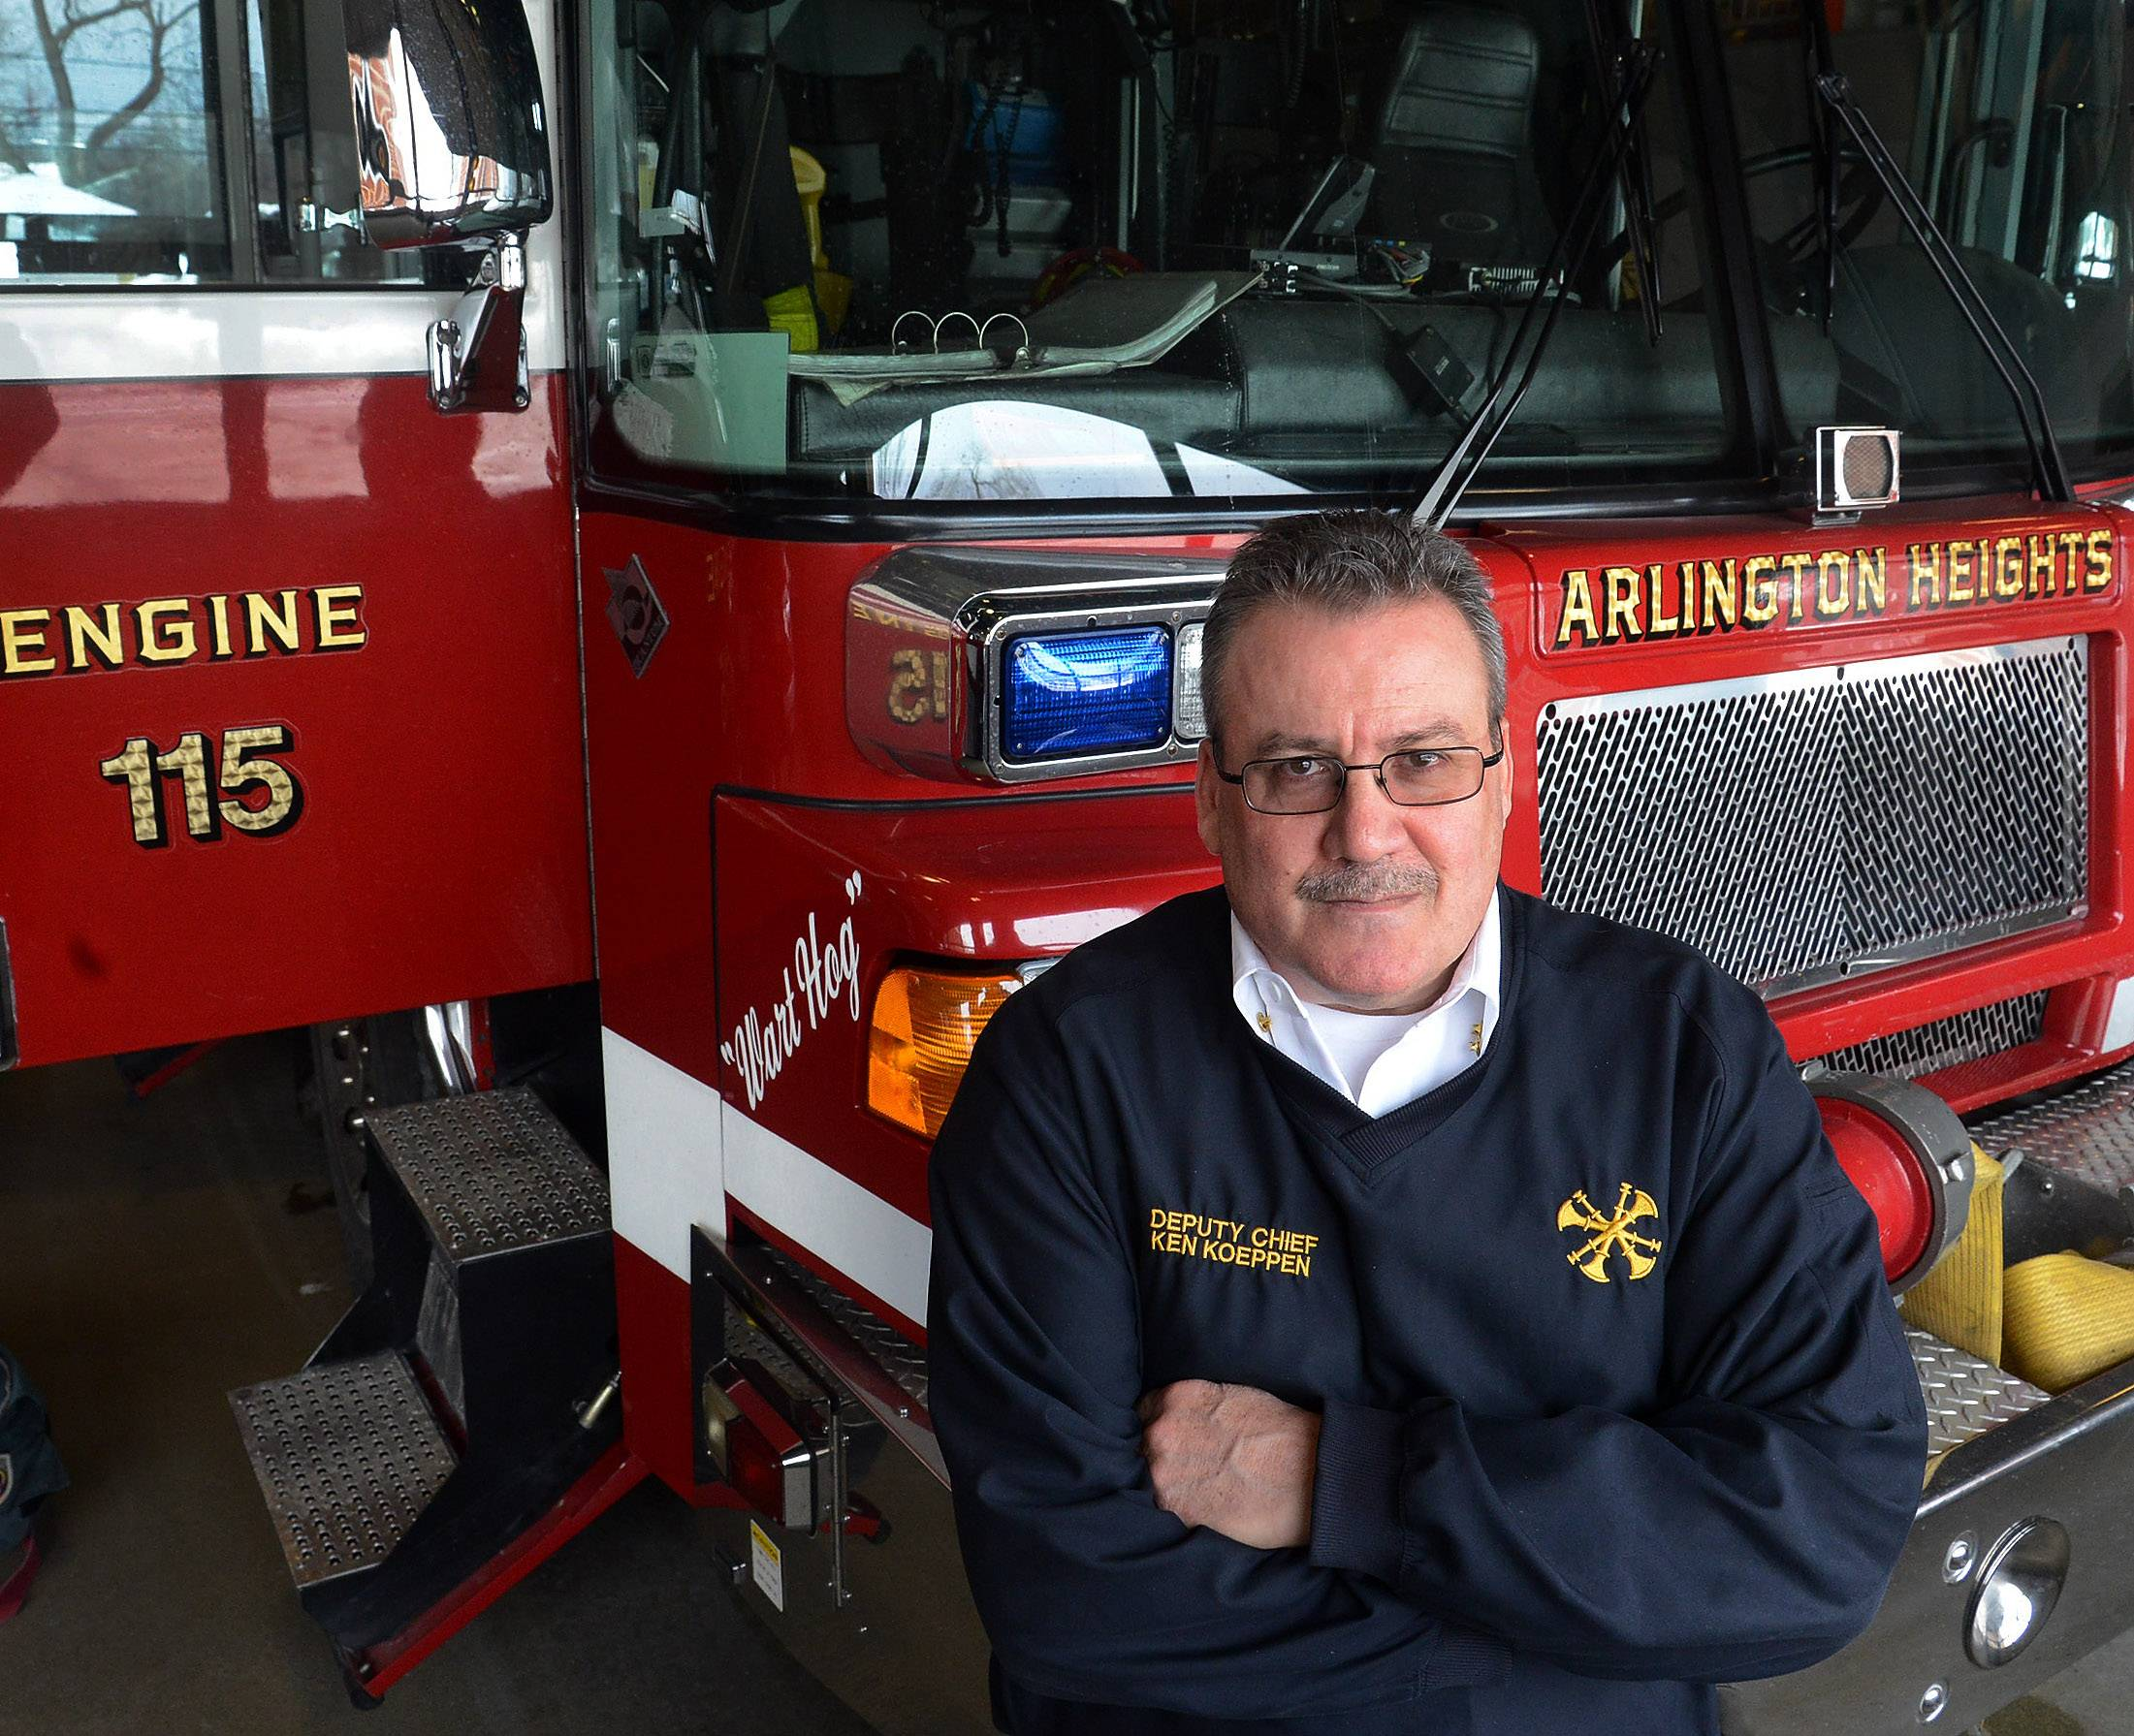 Ken Koeppen will step down as Arlington Heights fire chief Nov. 15 and take a job as deputy chief of administration with the Schaumburg Fire Department, officials said Tuesday.